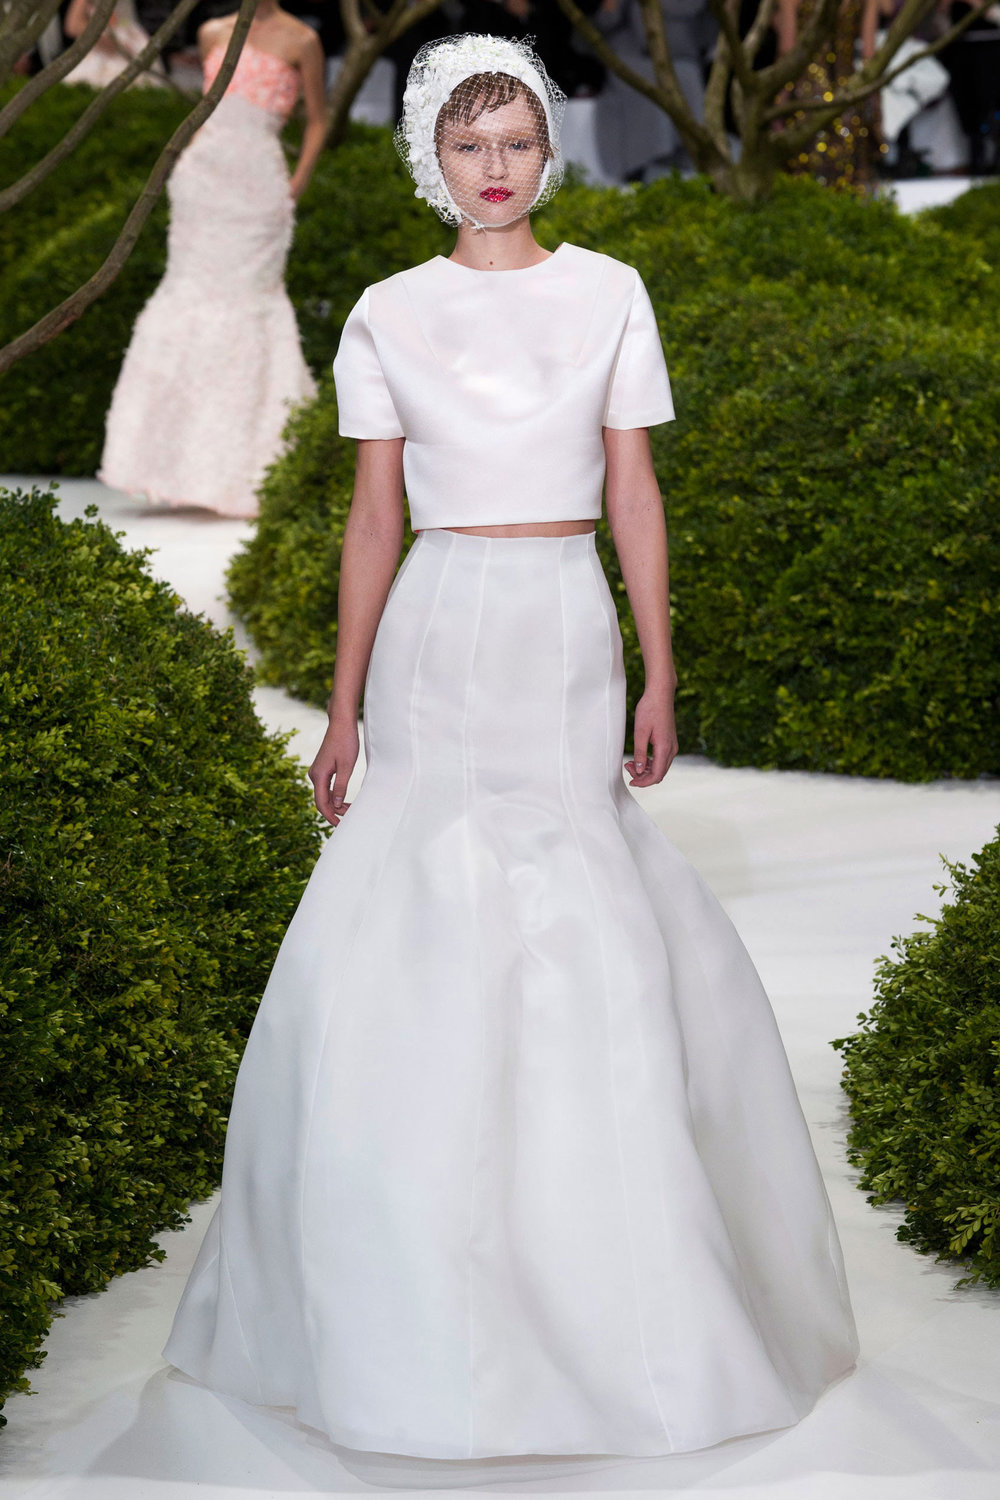 Raf Simons for Dior at the Spring 2013 haute couture show - Photo courtesy of vogue.com